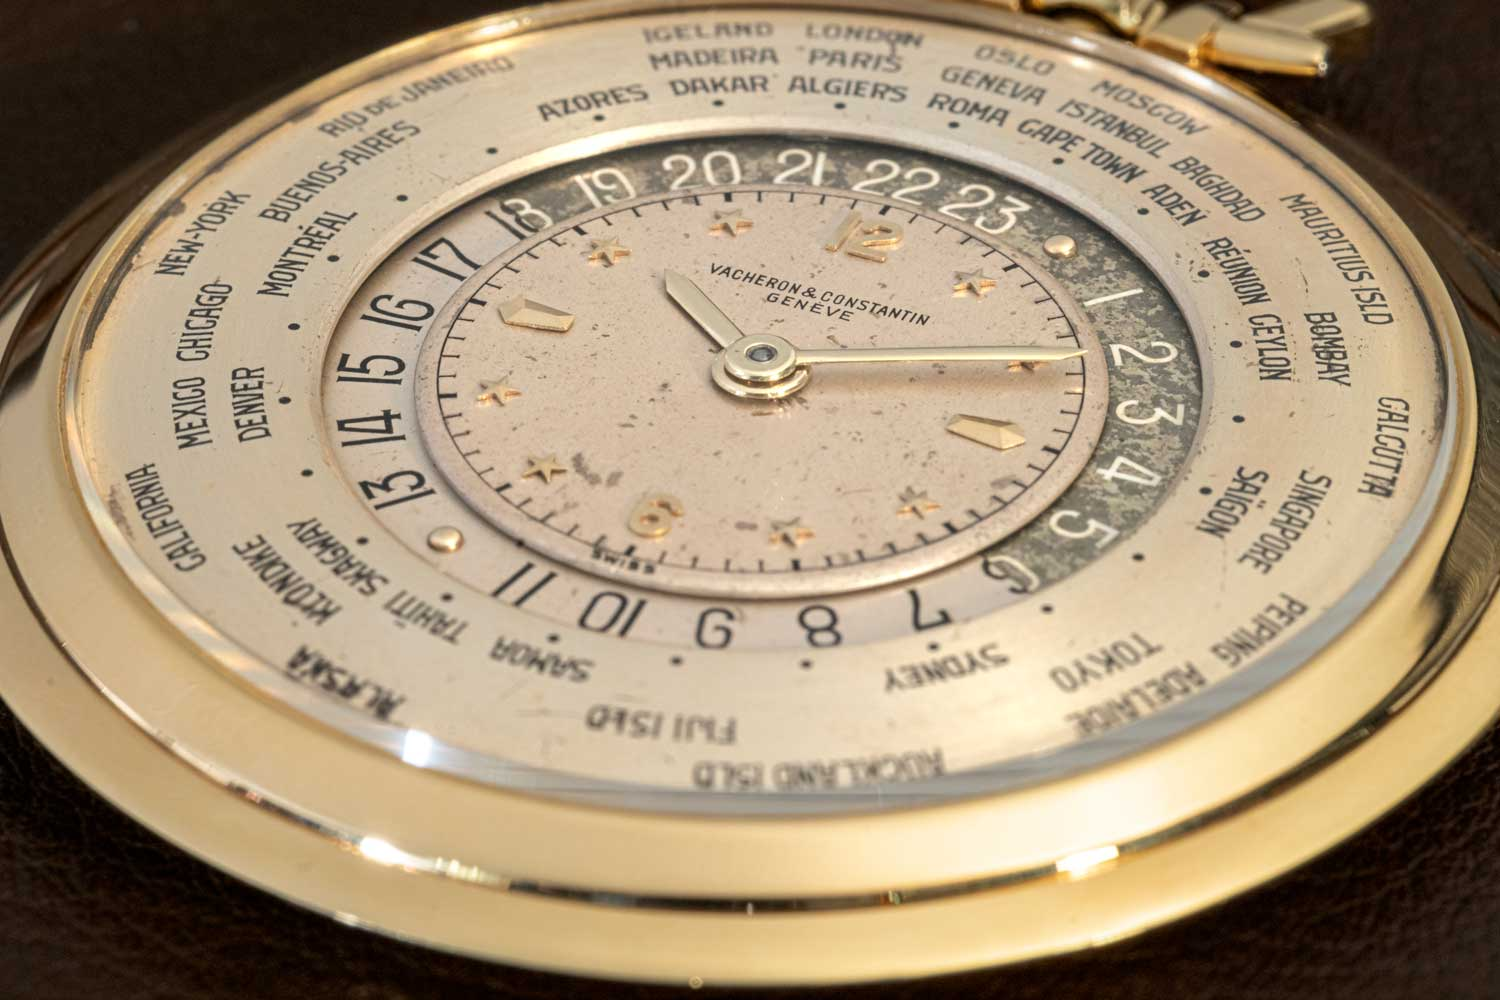 The Reference 4414 Heure Universelle's dial has its local time in the center and then a 24-hour disc that rotates around the perimeter of the dial in a counterclockwise pattern aligning with the 24 different time zones around the dial represented by the corresponding cities (©Revolution)